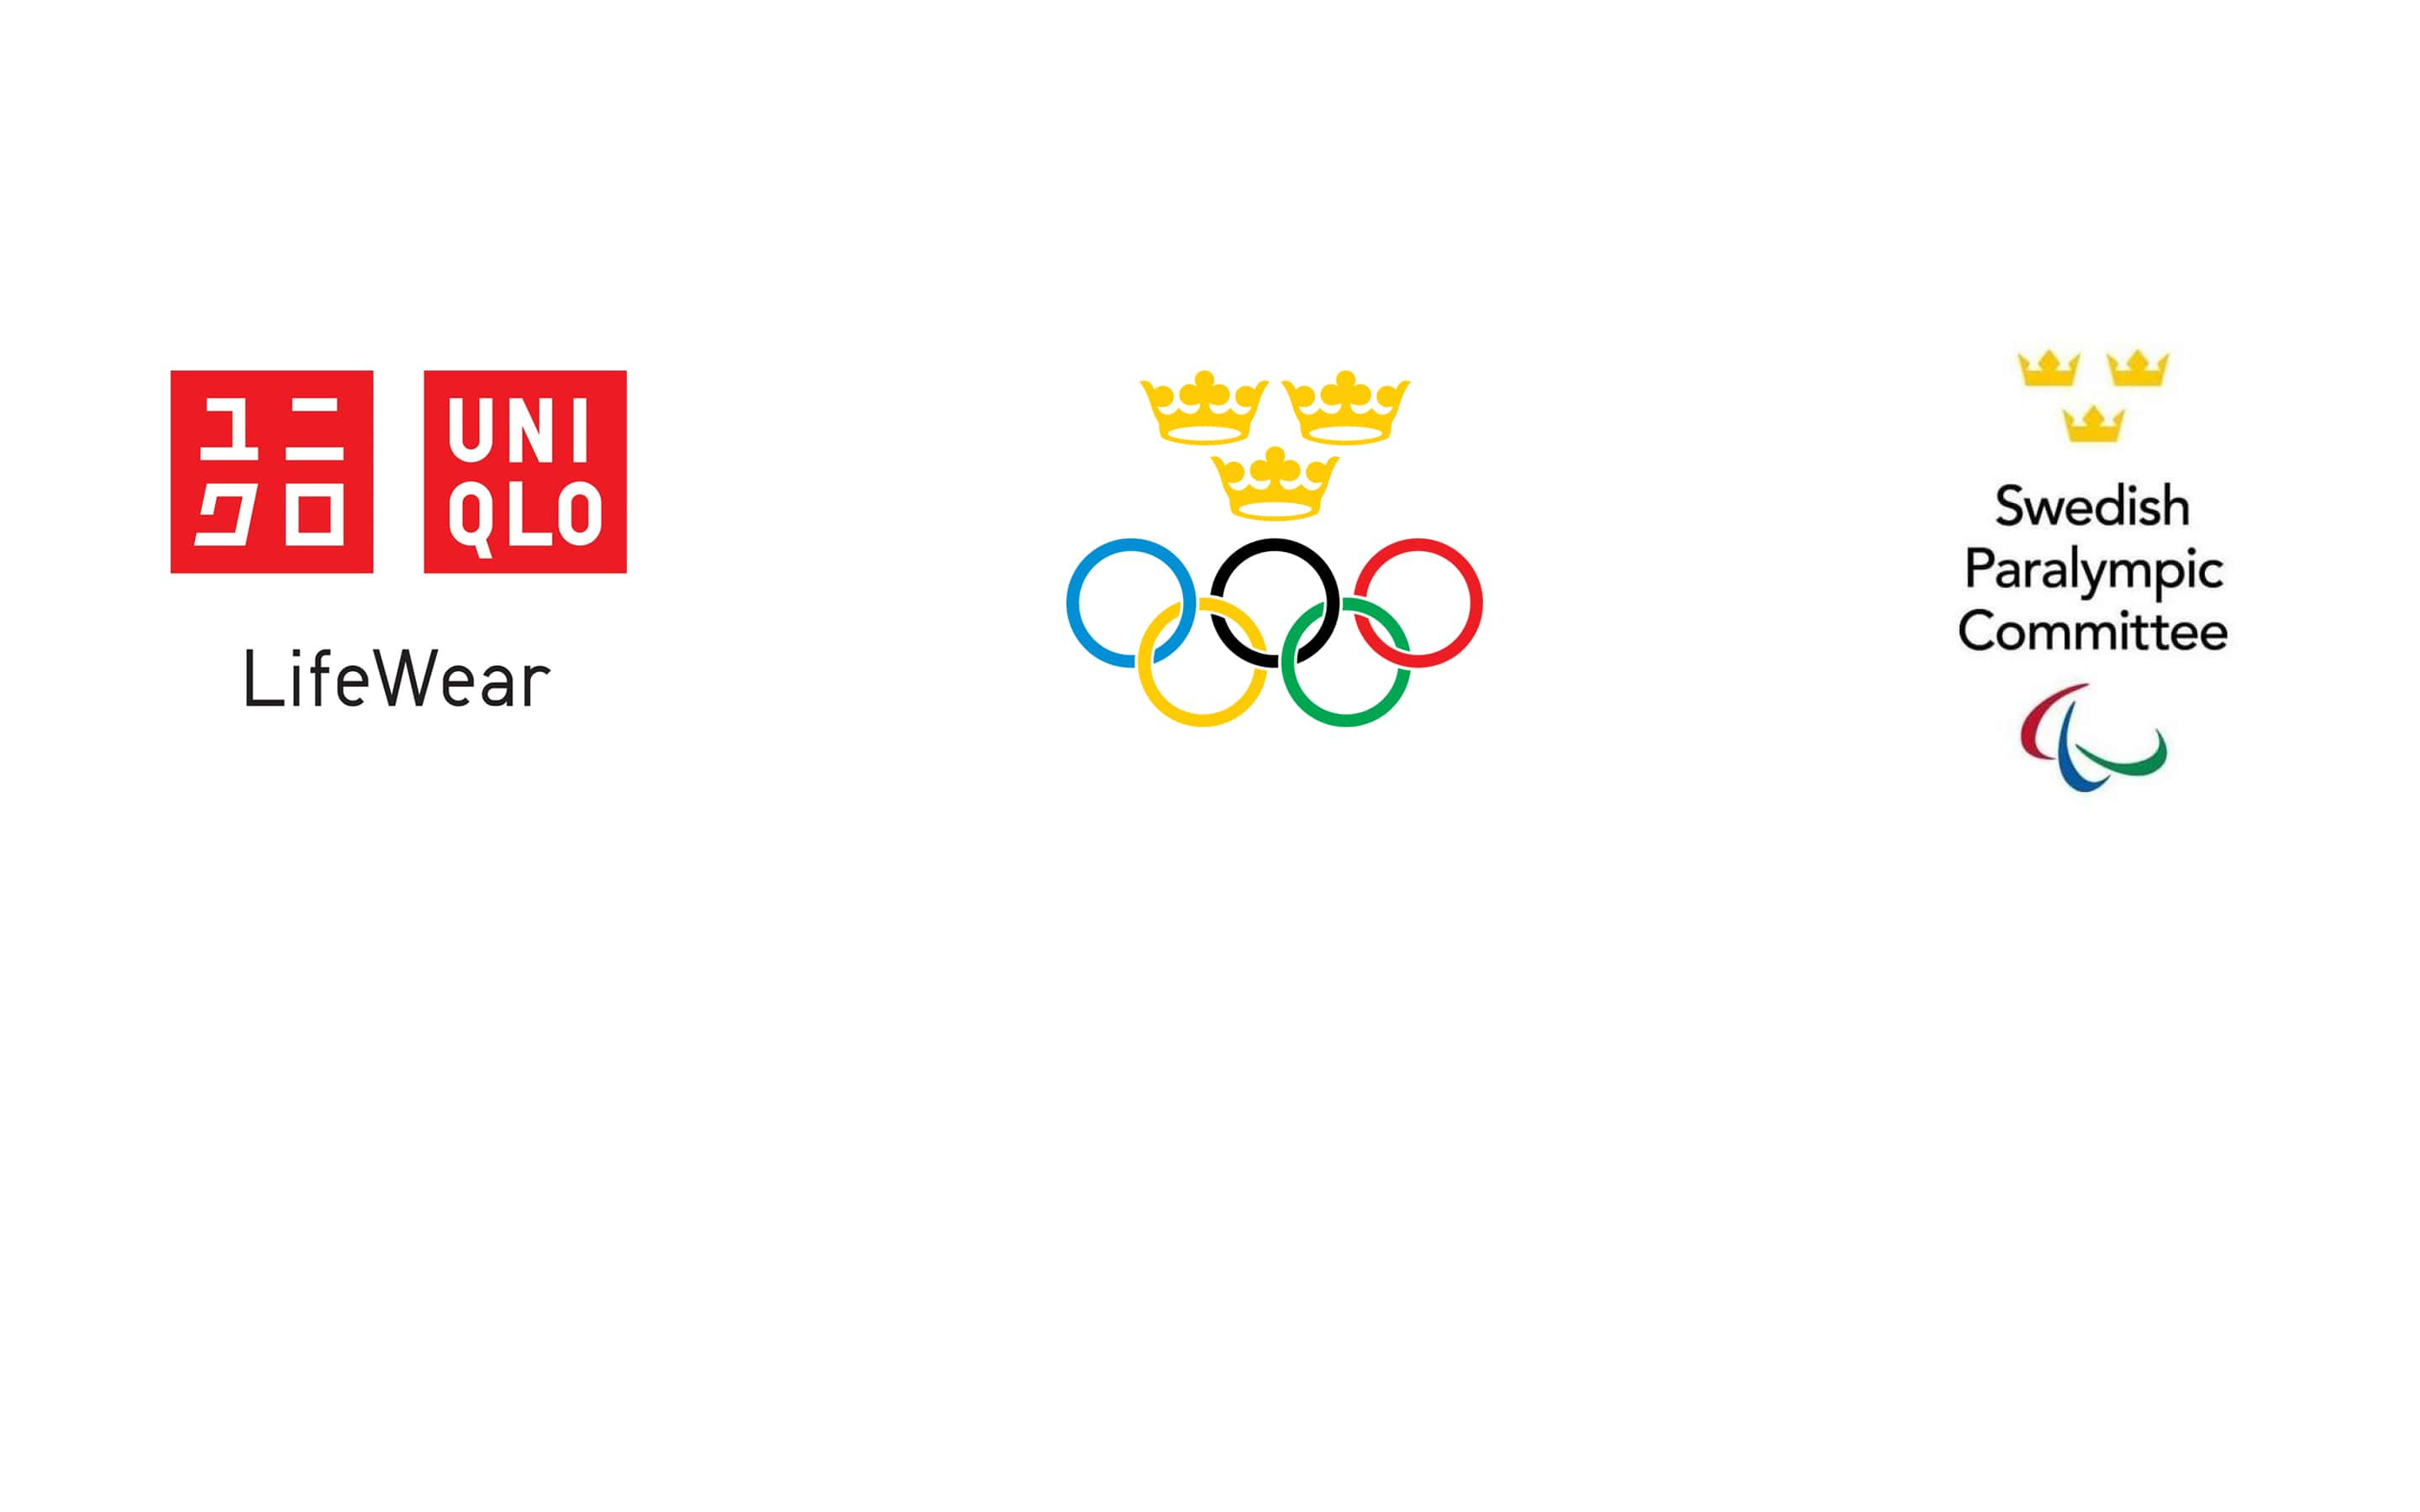 UNIQLO and Swedish Olympic Committee Announce Olympic Partnership